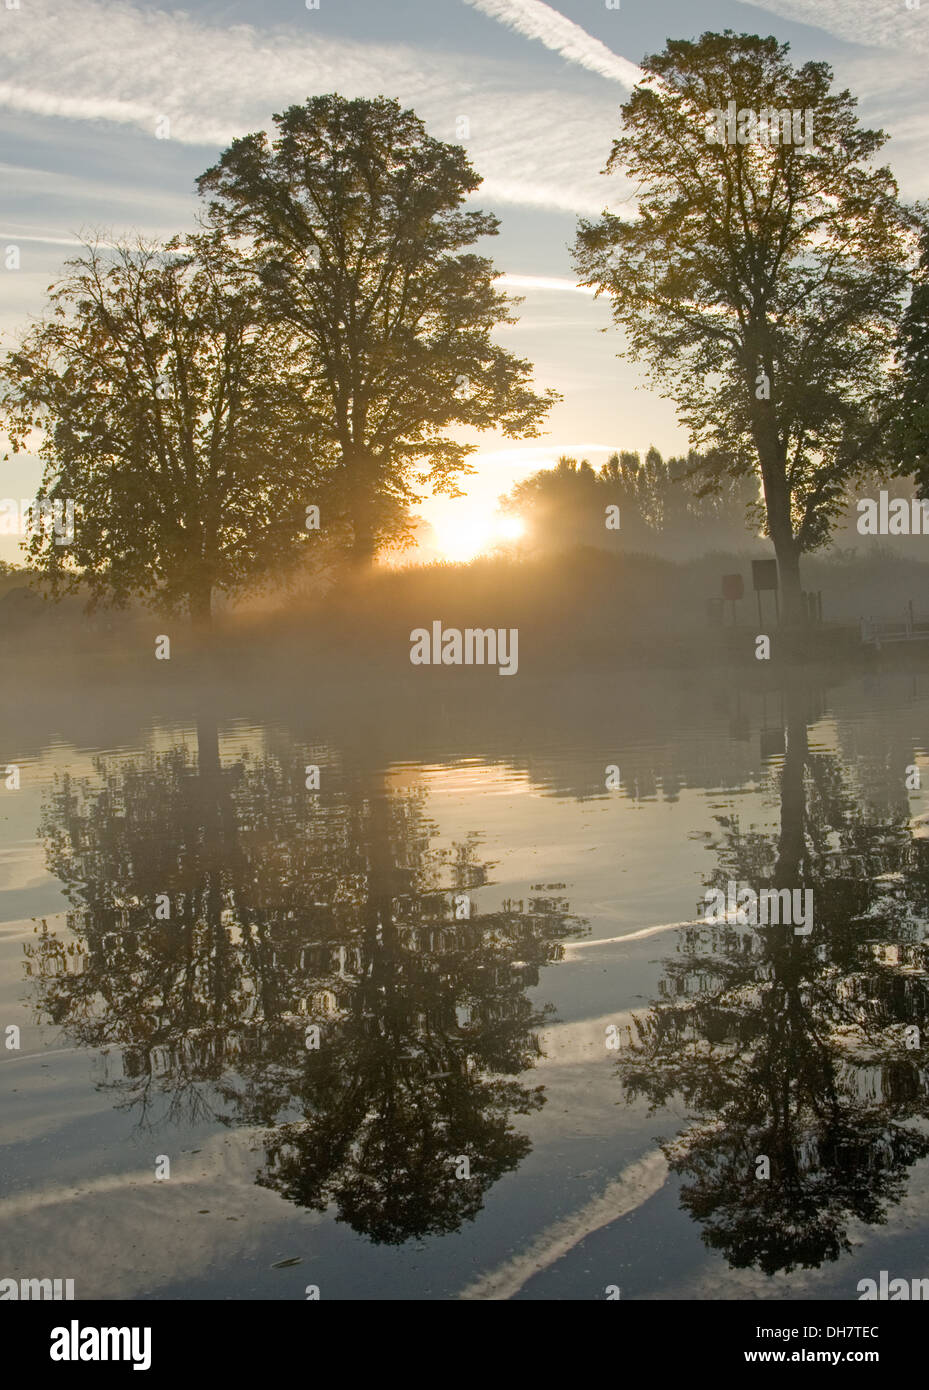 Autumnal river scene with trees reflected in the water and rising mist. - Stock Image